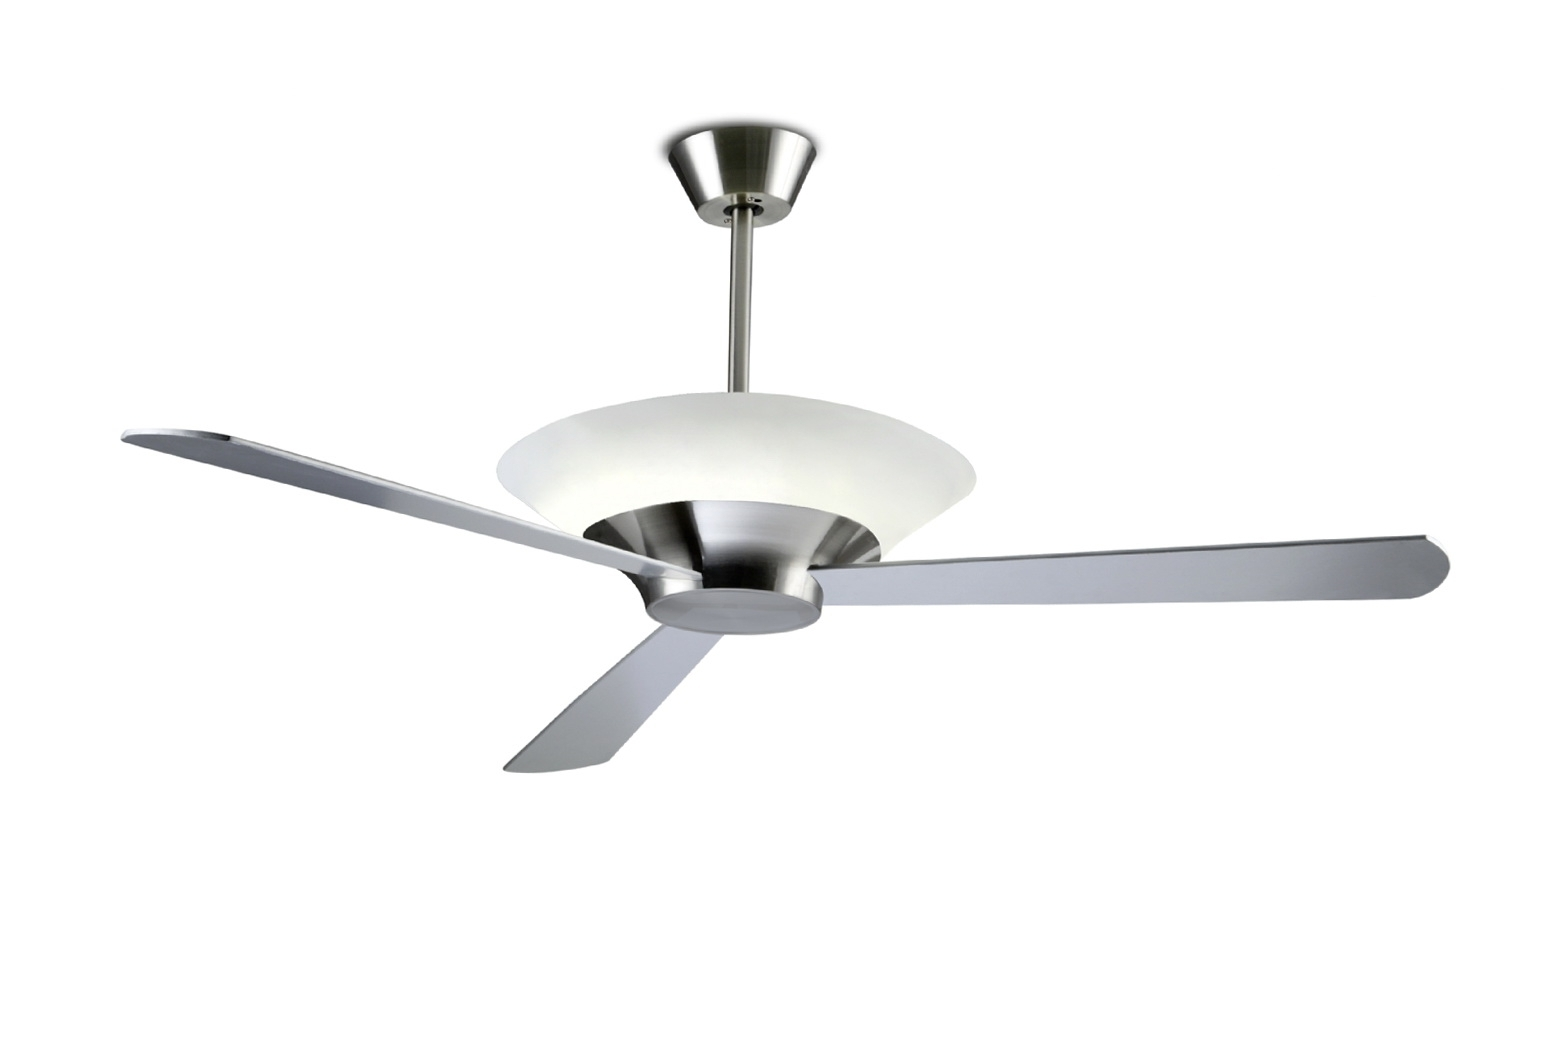 Mercator Ceiling Fans Bunnings • Ceiling Fans Ideas Pertaining To Most Recent Outdoor Ceiling Fans At Bunnings (Gallery 9 of 20)